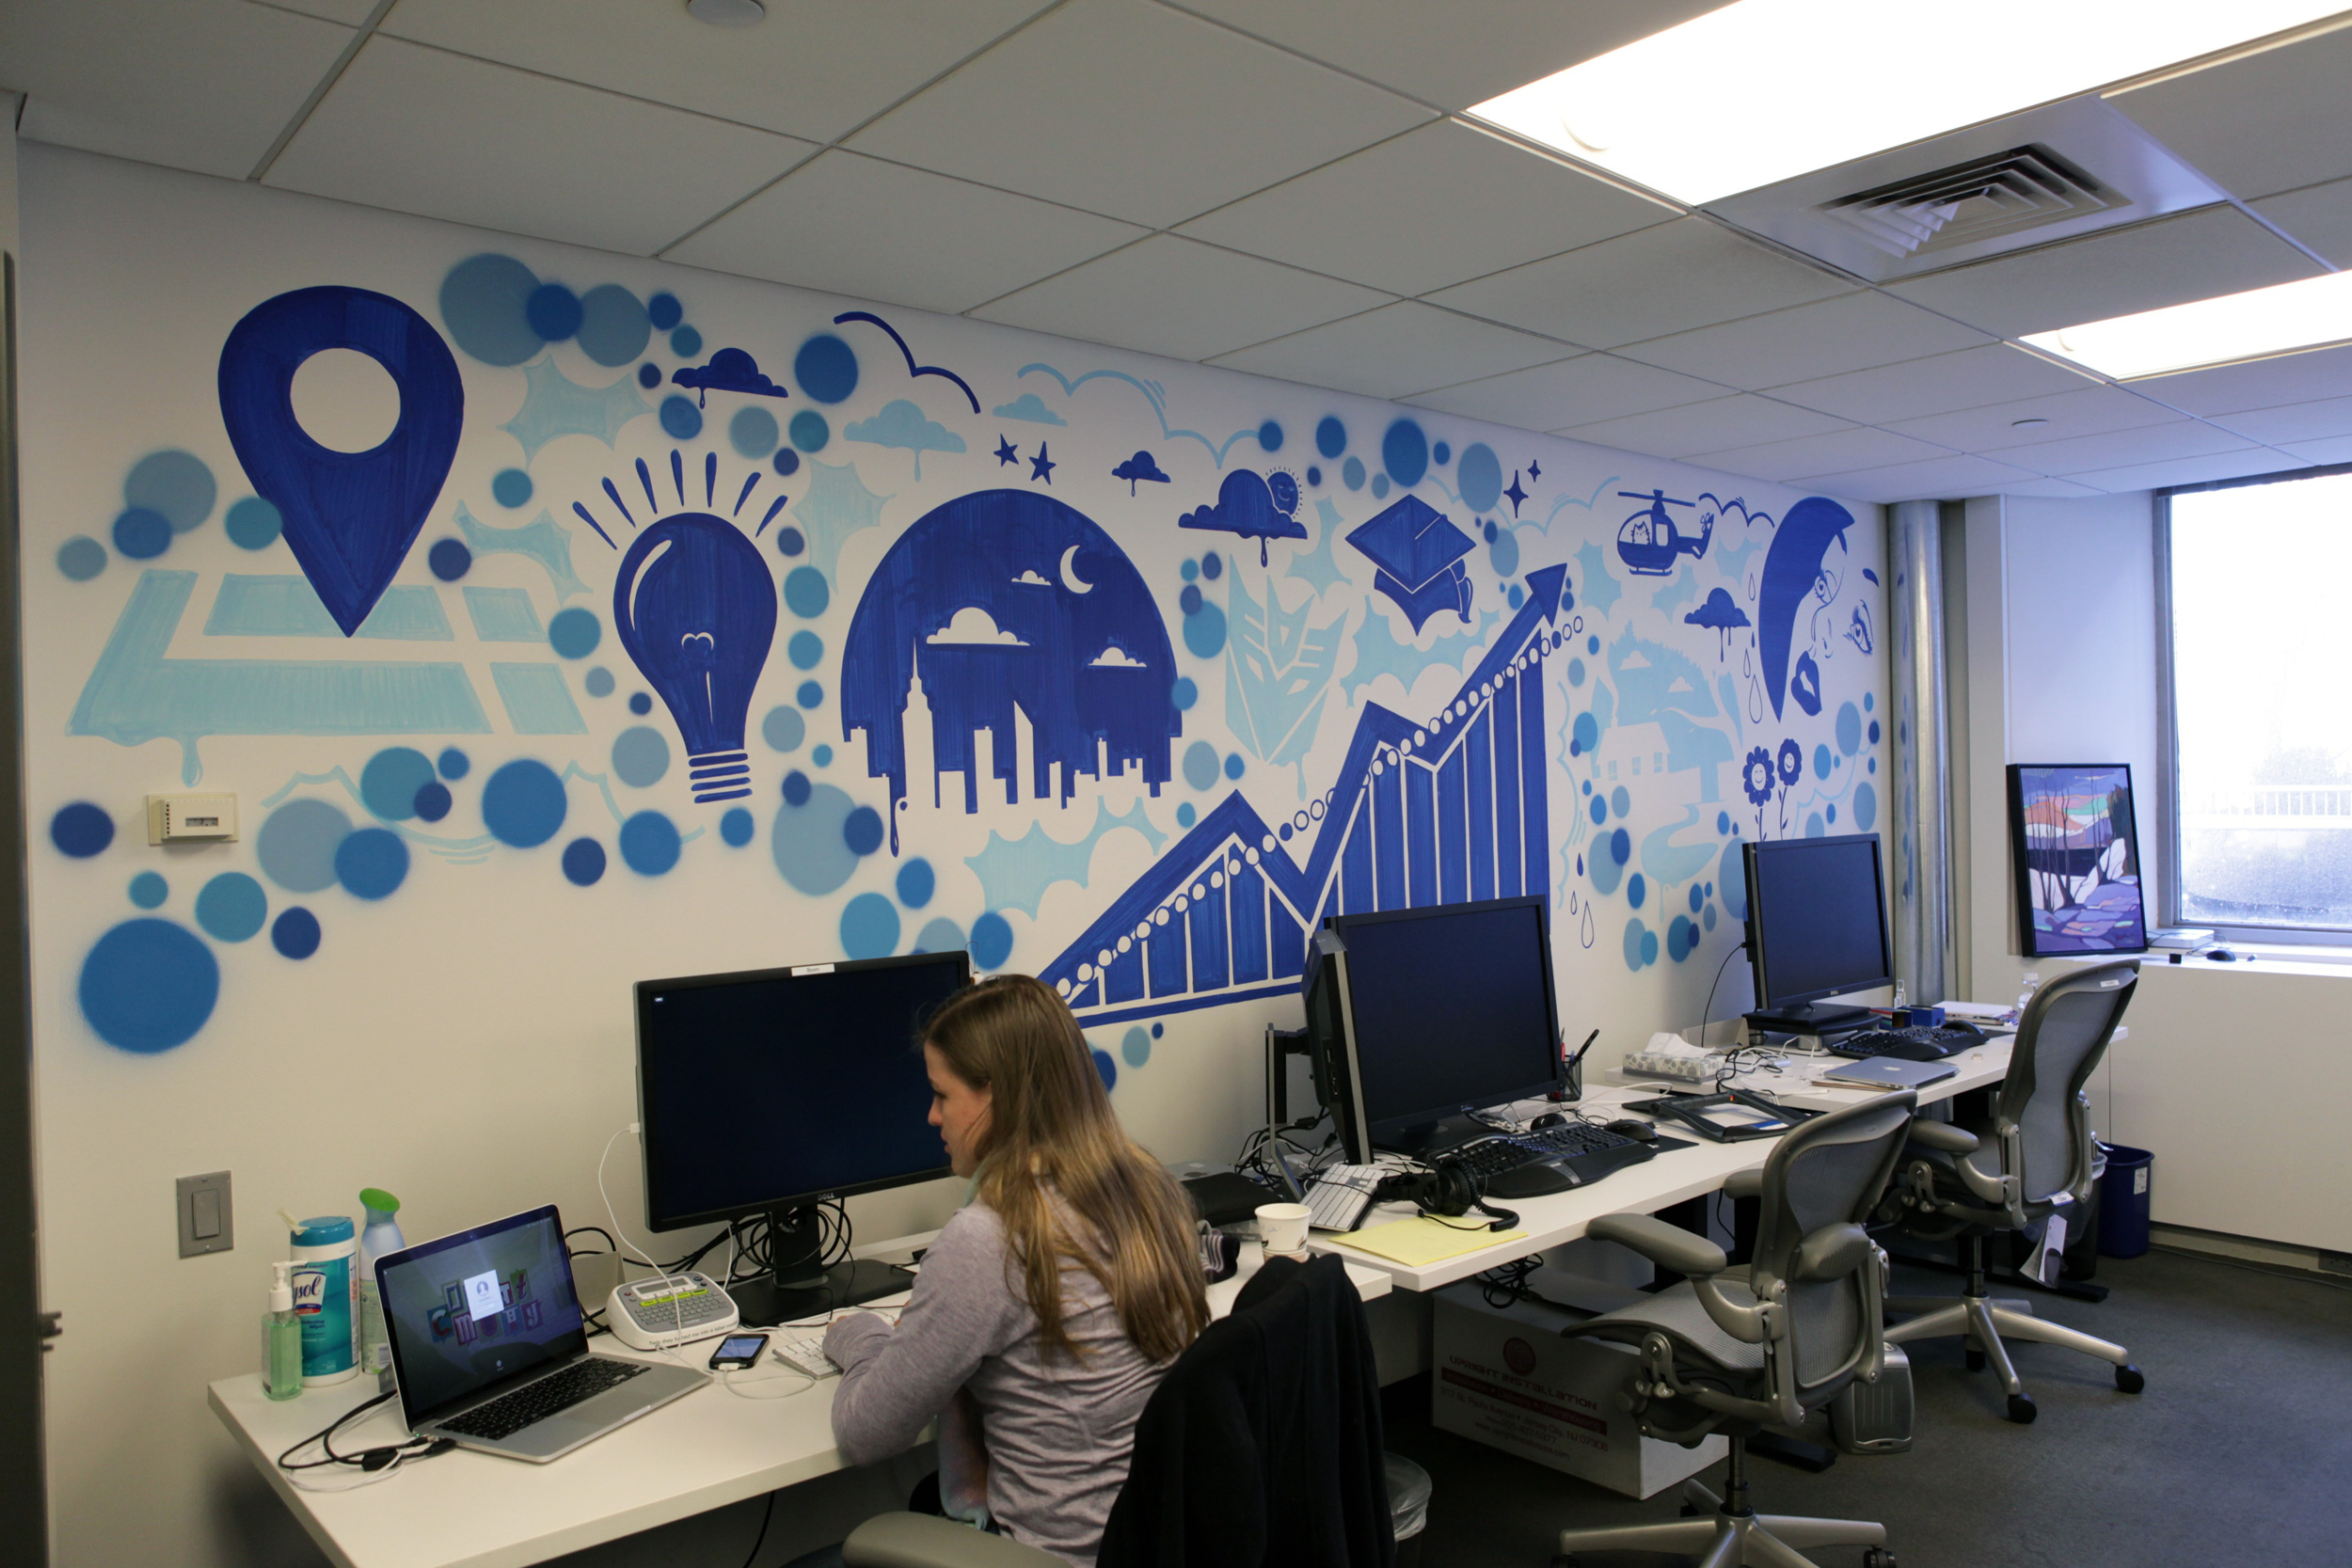 New york facebook office graffiti art graffiti usa for Design agency usa